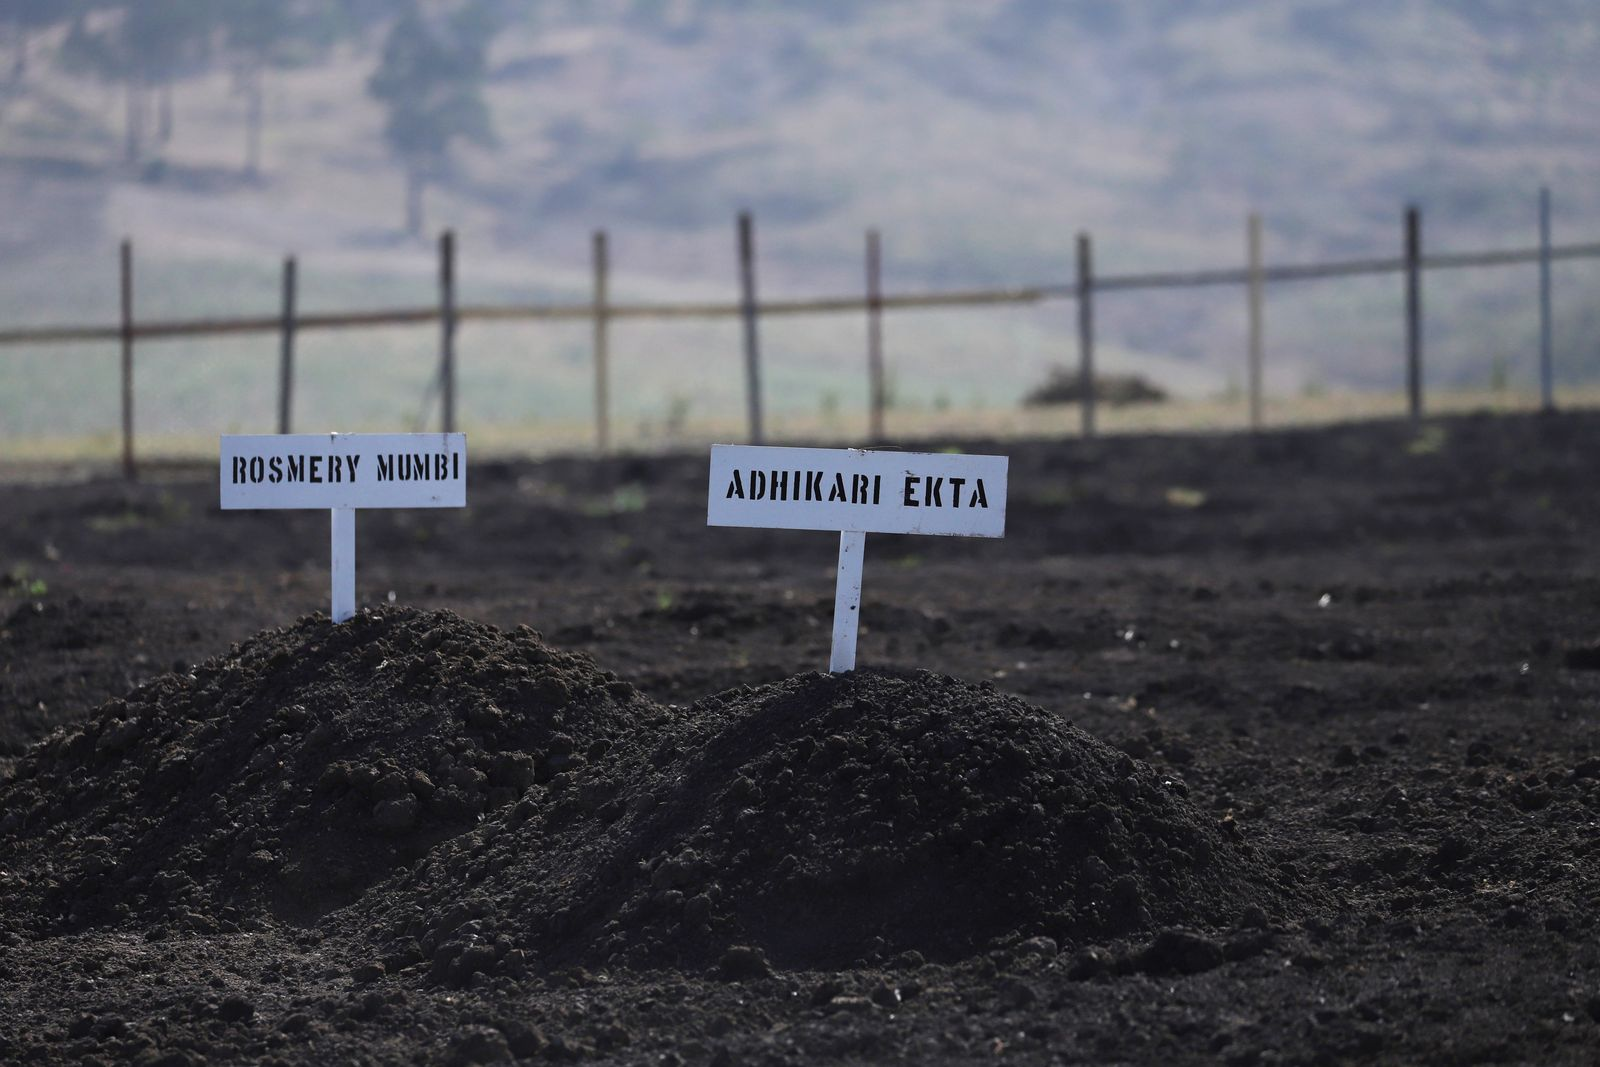 Signs with the names of victims of Ethiopian Airlines Flight ET302 Boeing 737 Max crash are seen during a memorial service at the crash site near Bishoftu